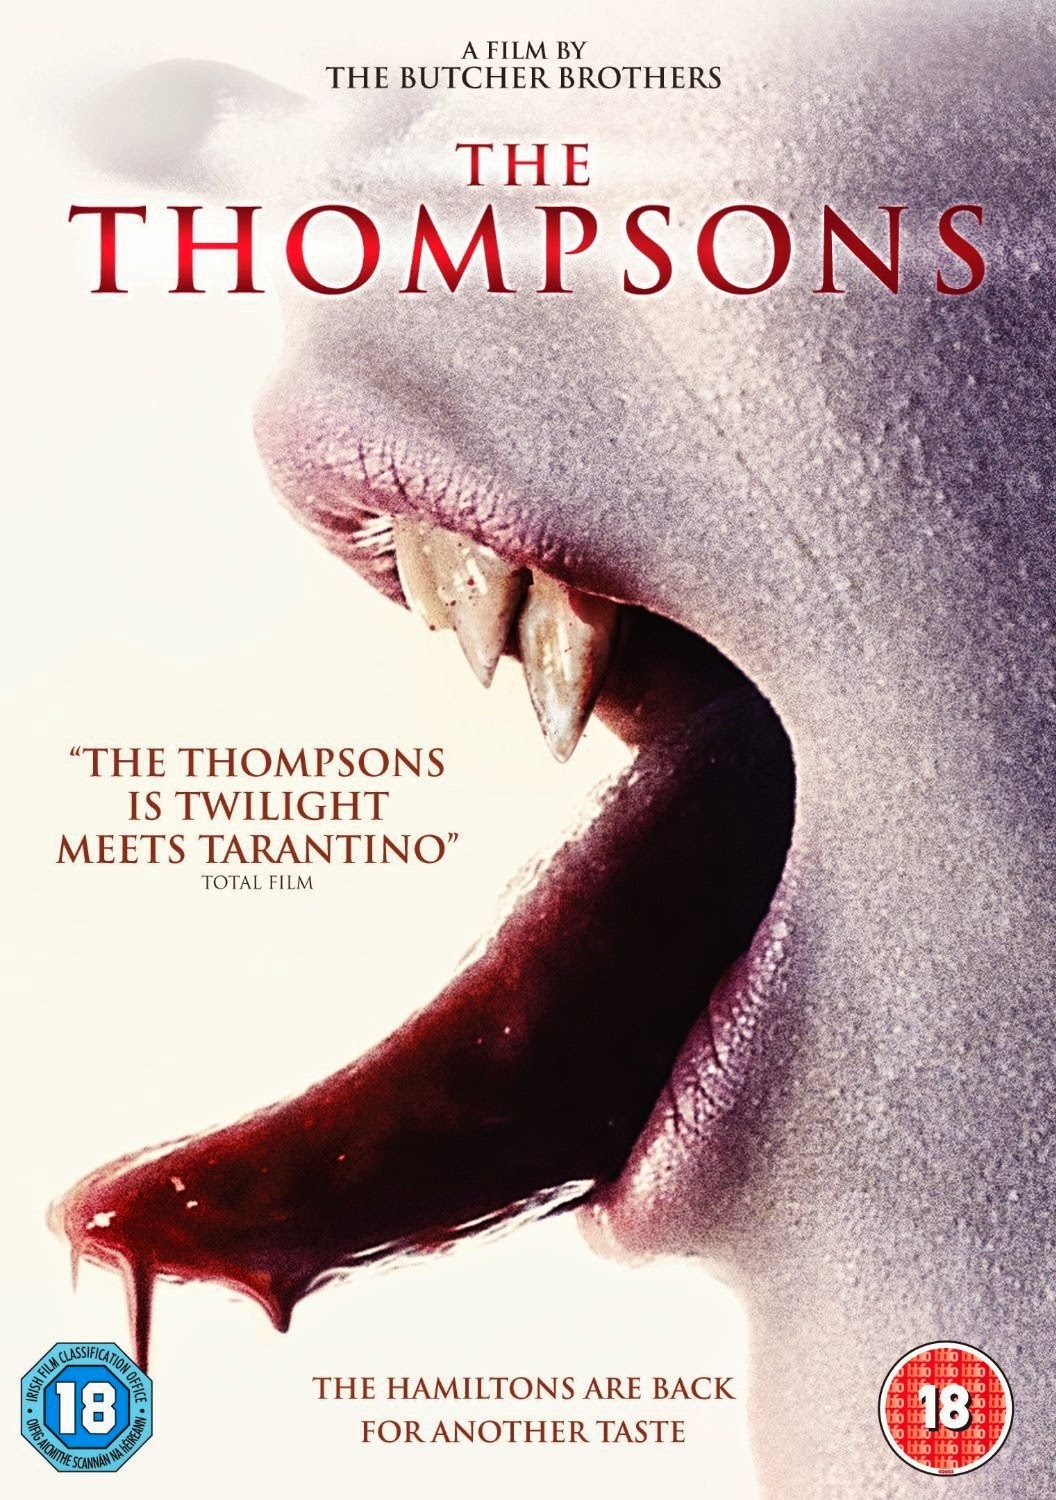 film en ligne : the thompsons